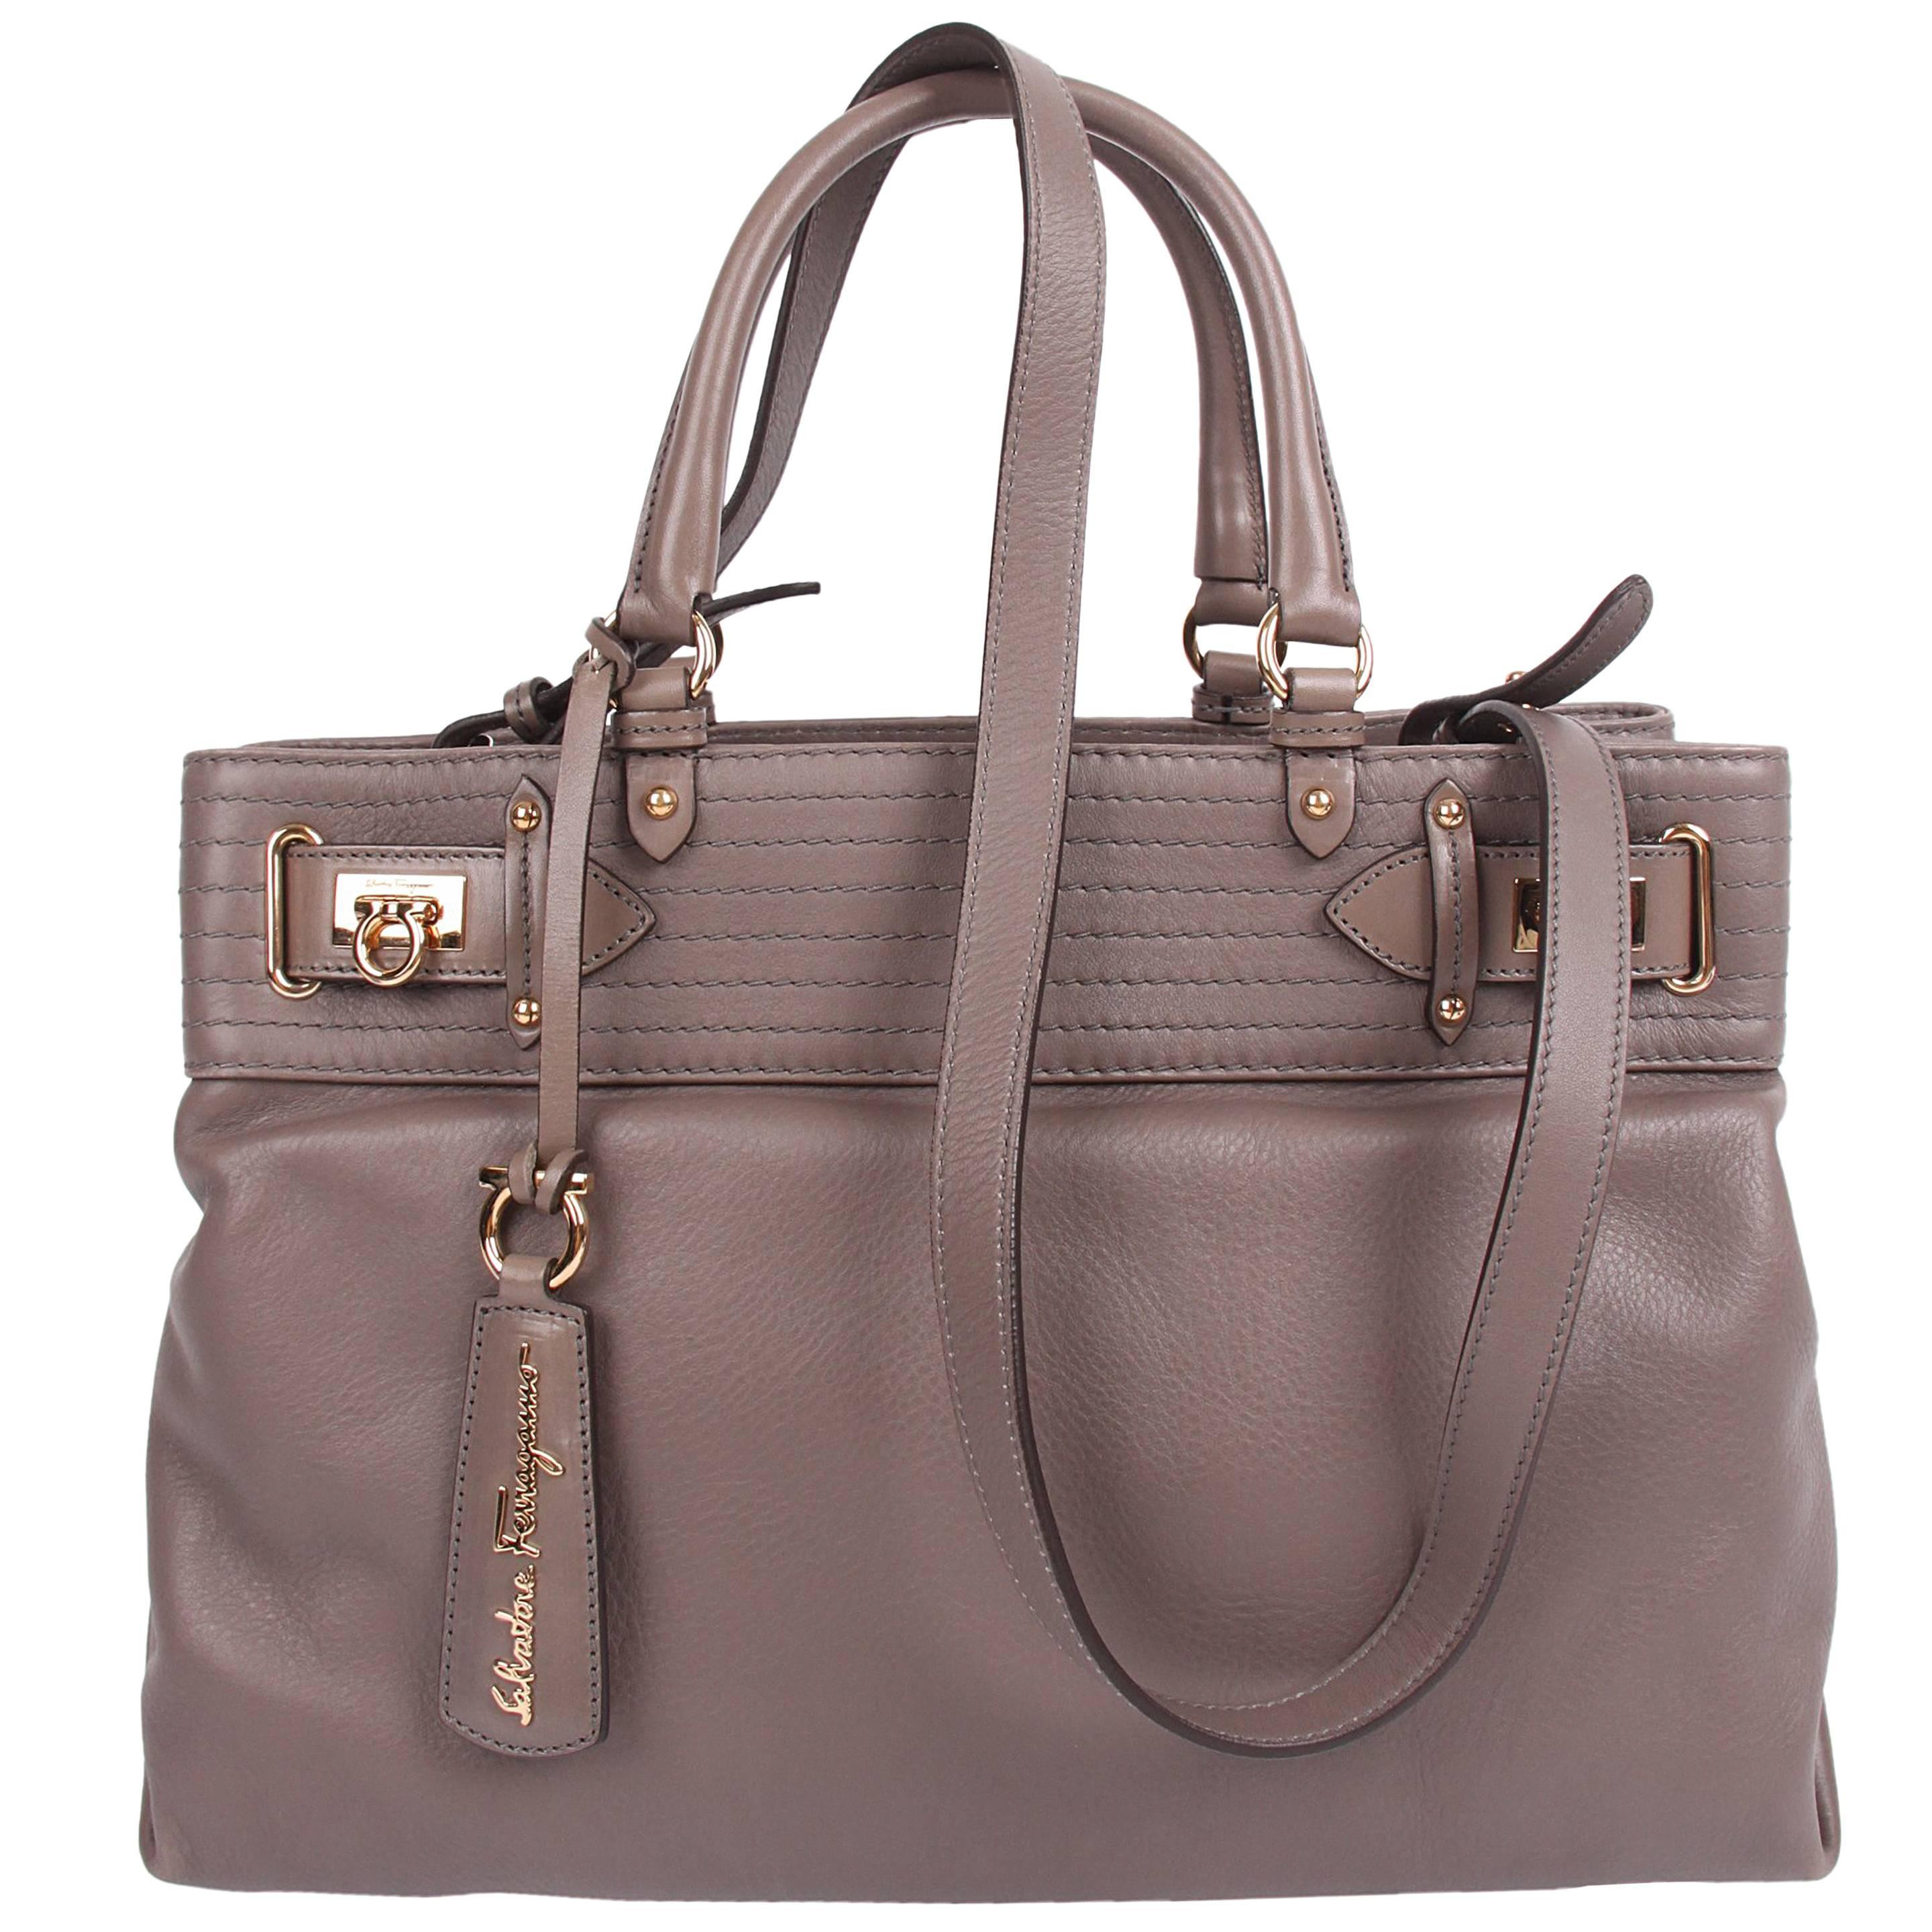 Salvatore Ferragamo Leather Buckled Tote Bag Visone - taupe Salvatore Ferr  For Sale at 1stdibs 3ff78c912ae64